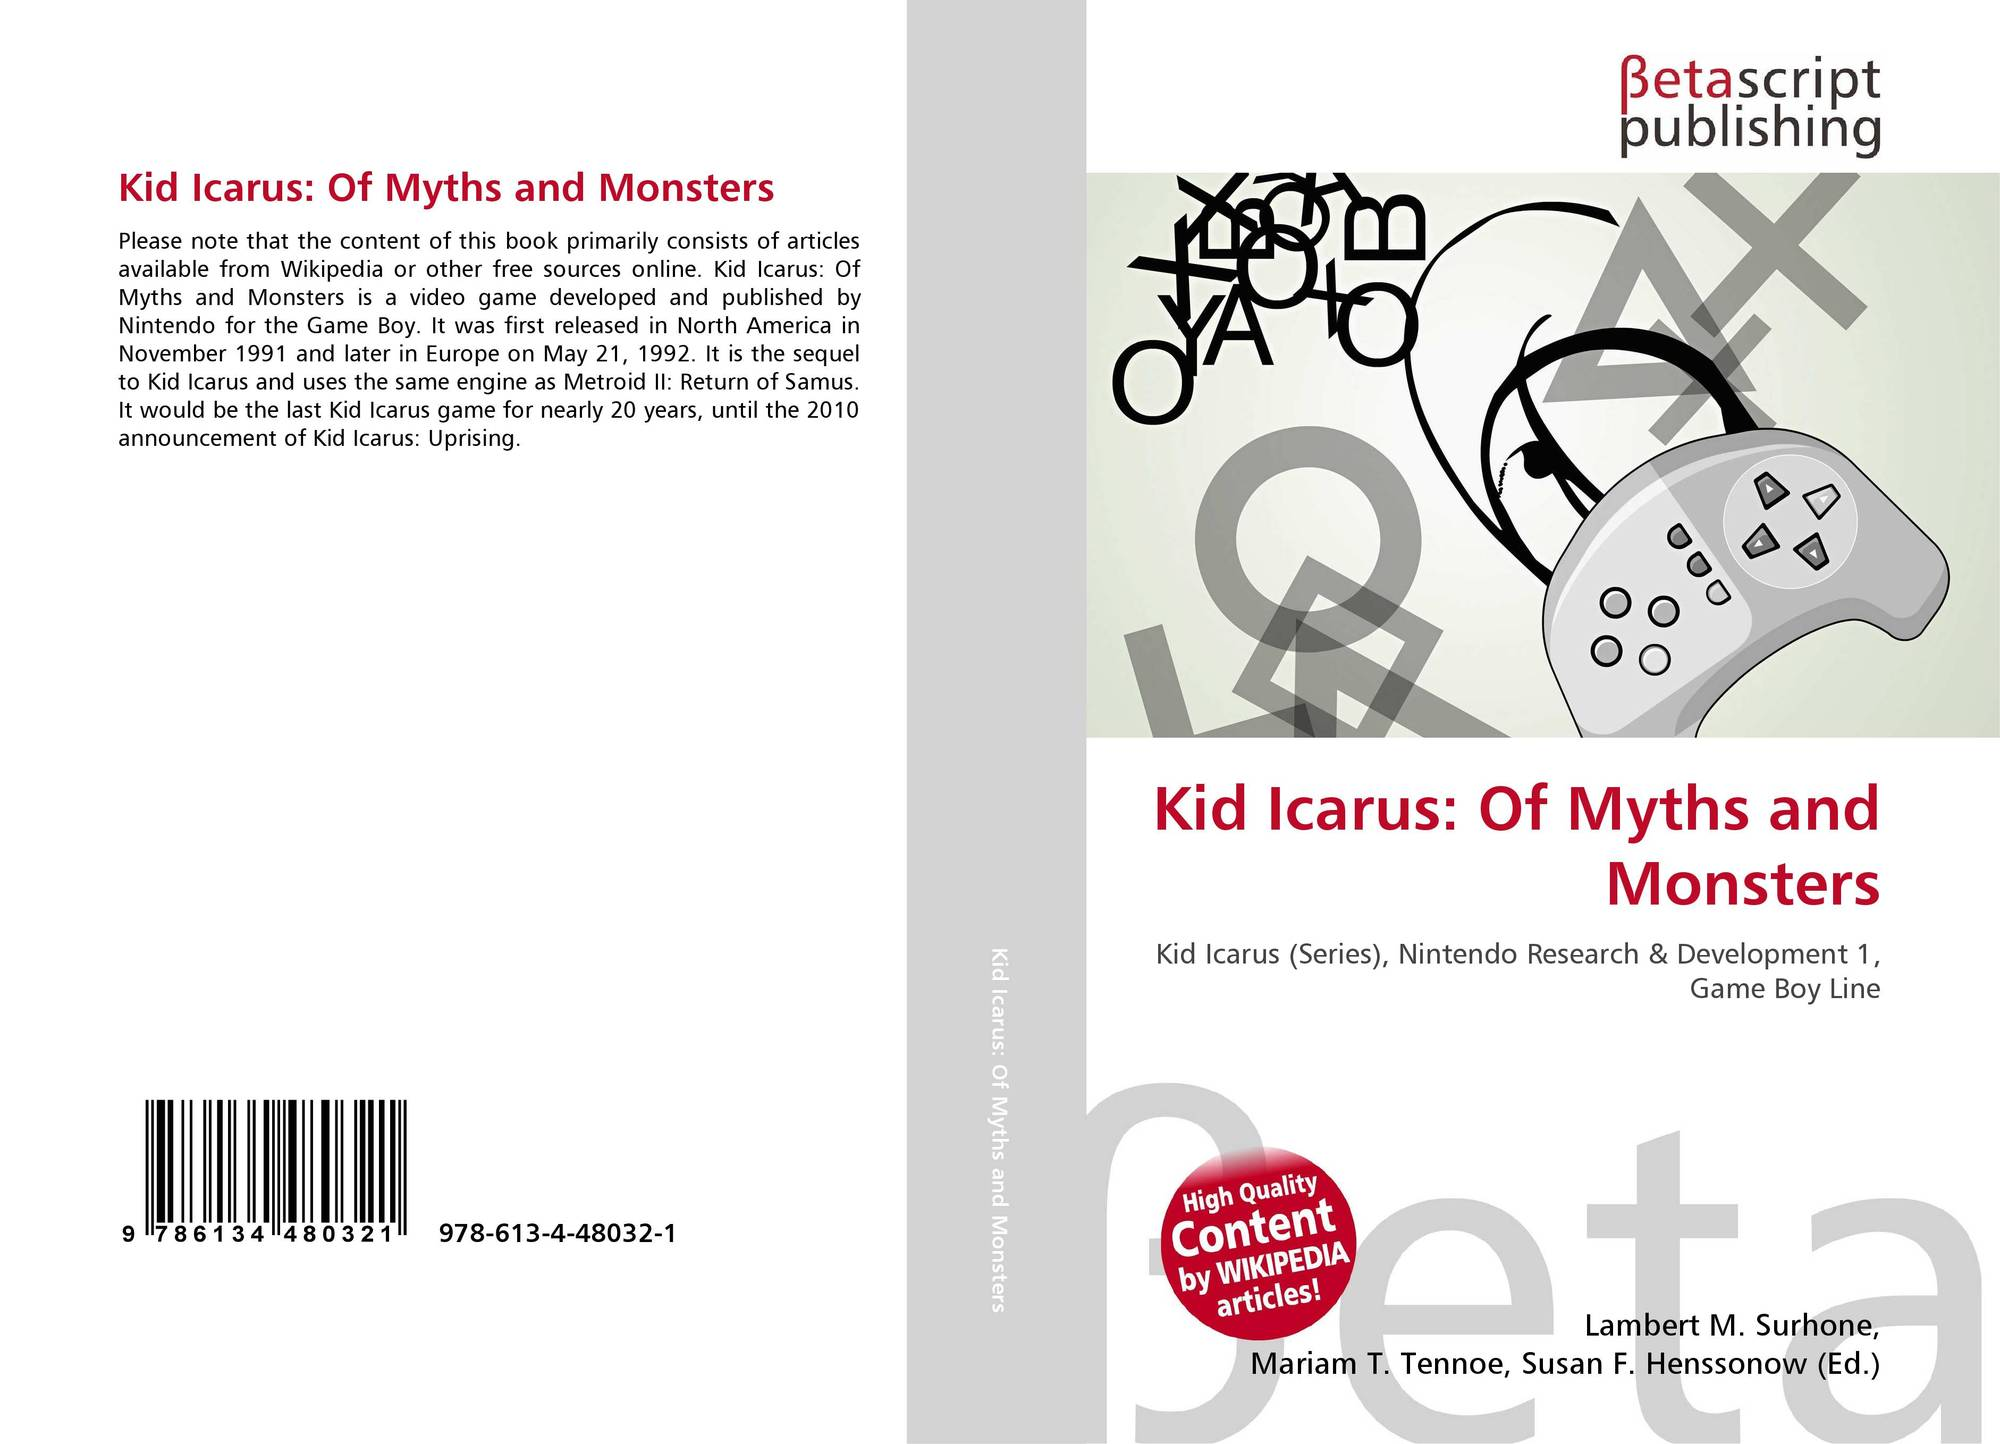 Bookcover Of Kid Icarus Myths And Monsters 9786134480321